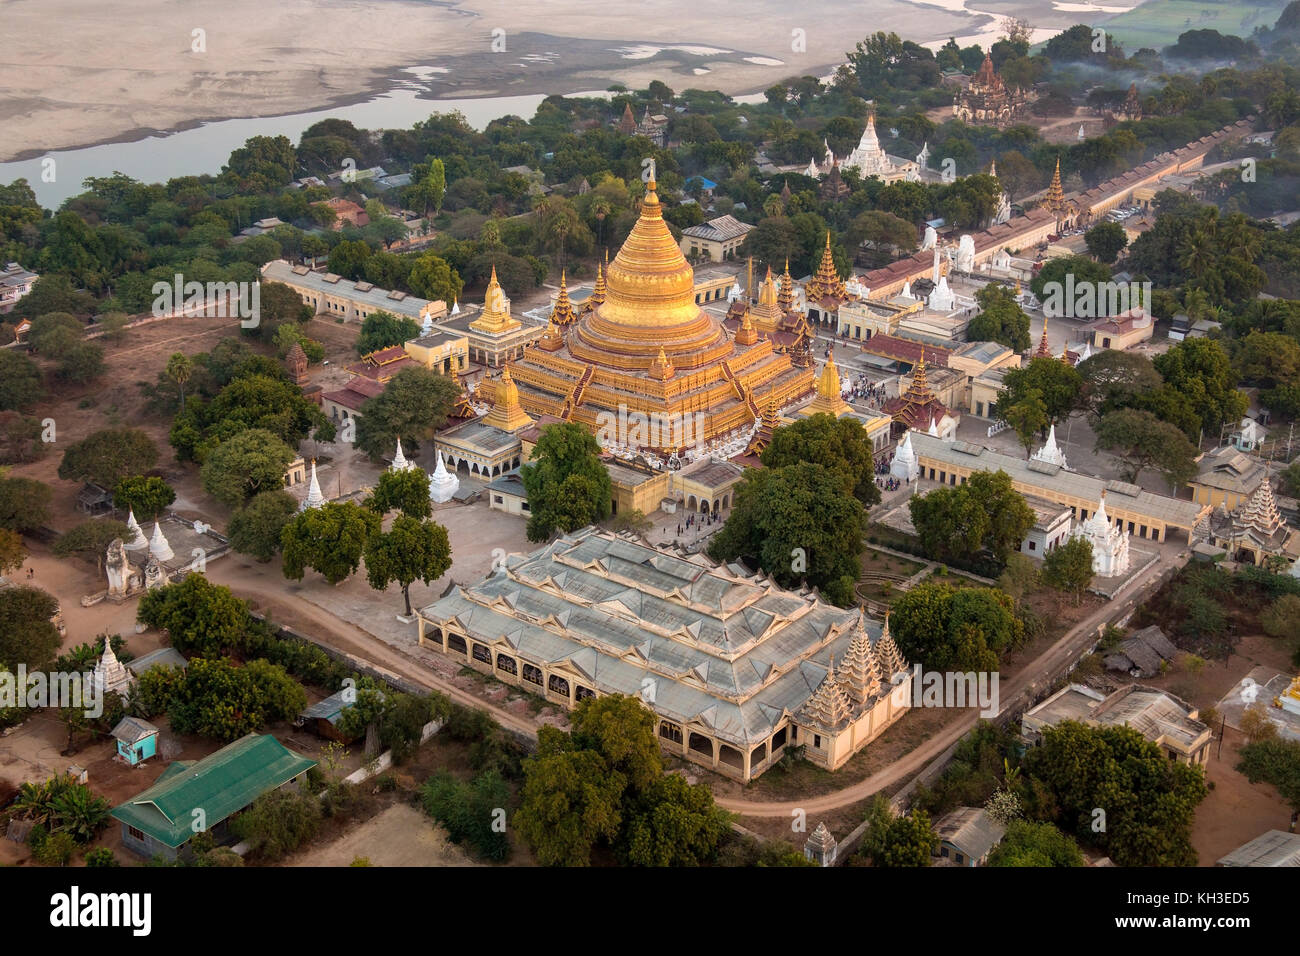 An early morning aerial view of the Shwezigon Buddhist Temple in the ancient city of Bagan in Myanmar (Burma). Stock Photo